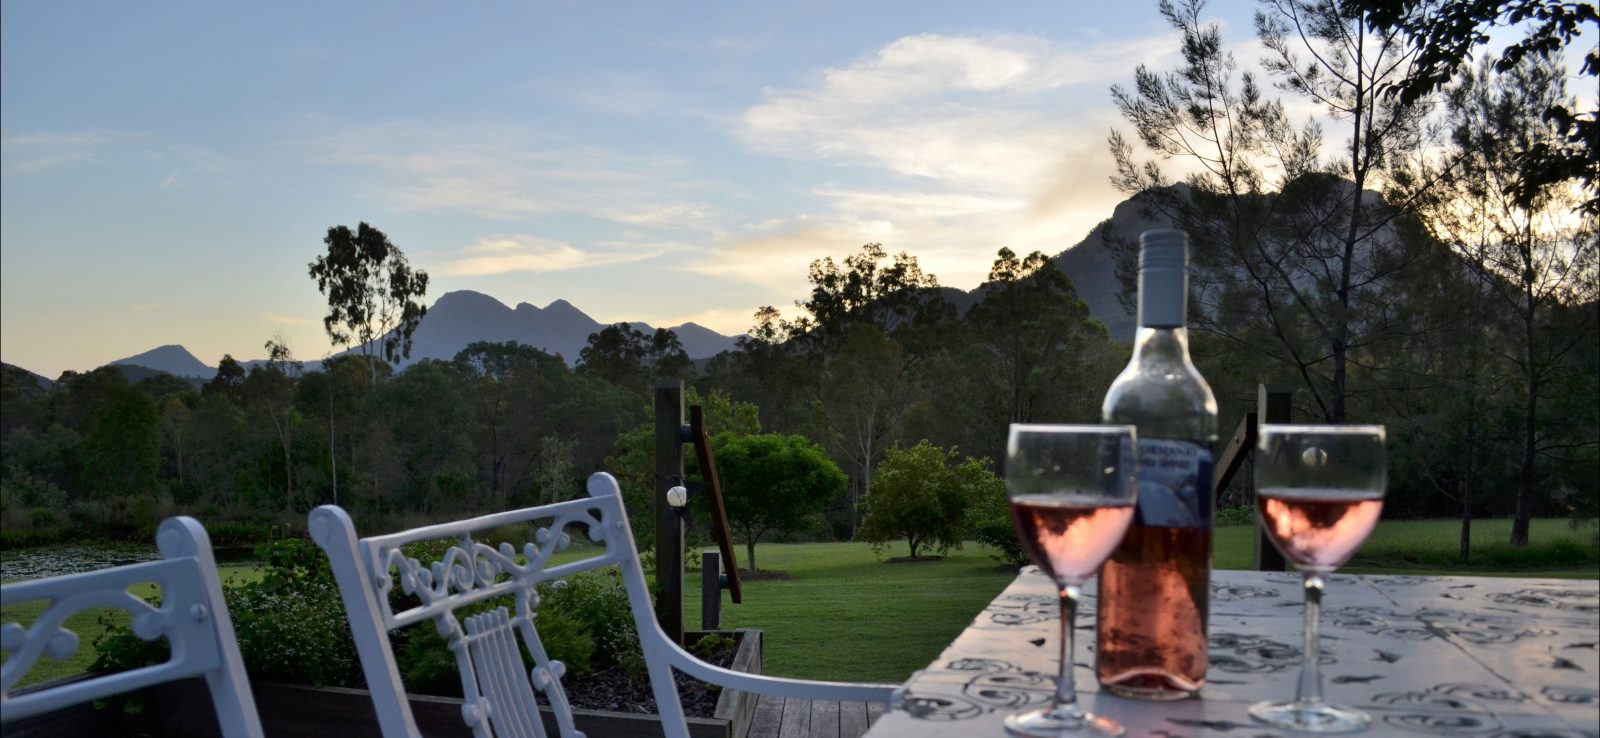 Enjoy a wine whilst taking in the view of Mt Barney and Mt Maroon